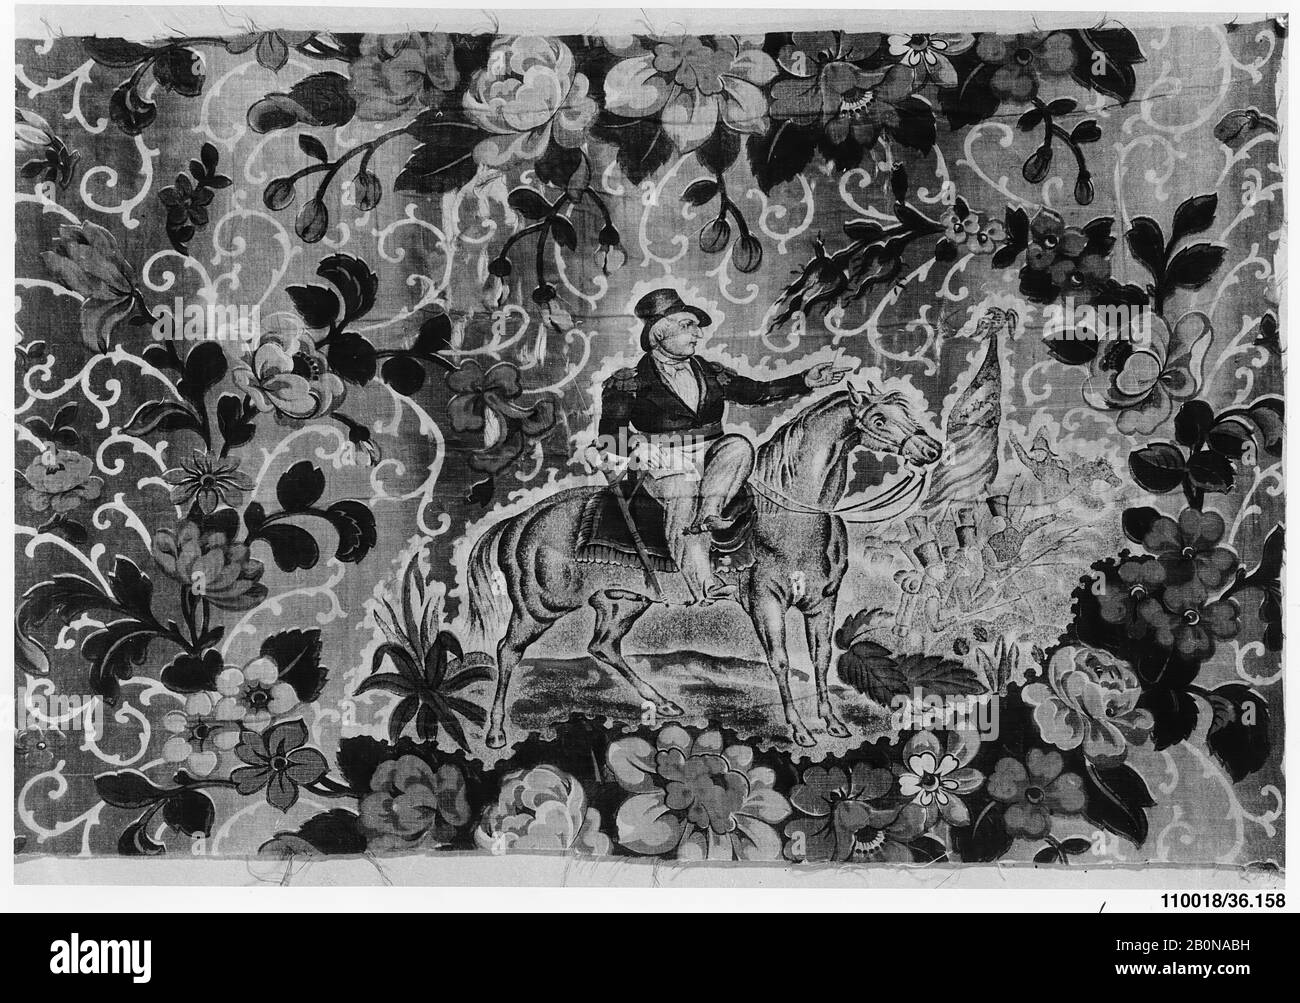 Piece, American, ca. 1846–48, American, Cotton, engraved, roller-printed, 25 x 16 in. (63.5 x 40.6 cm), Textiles Stock Photo